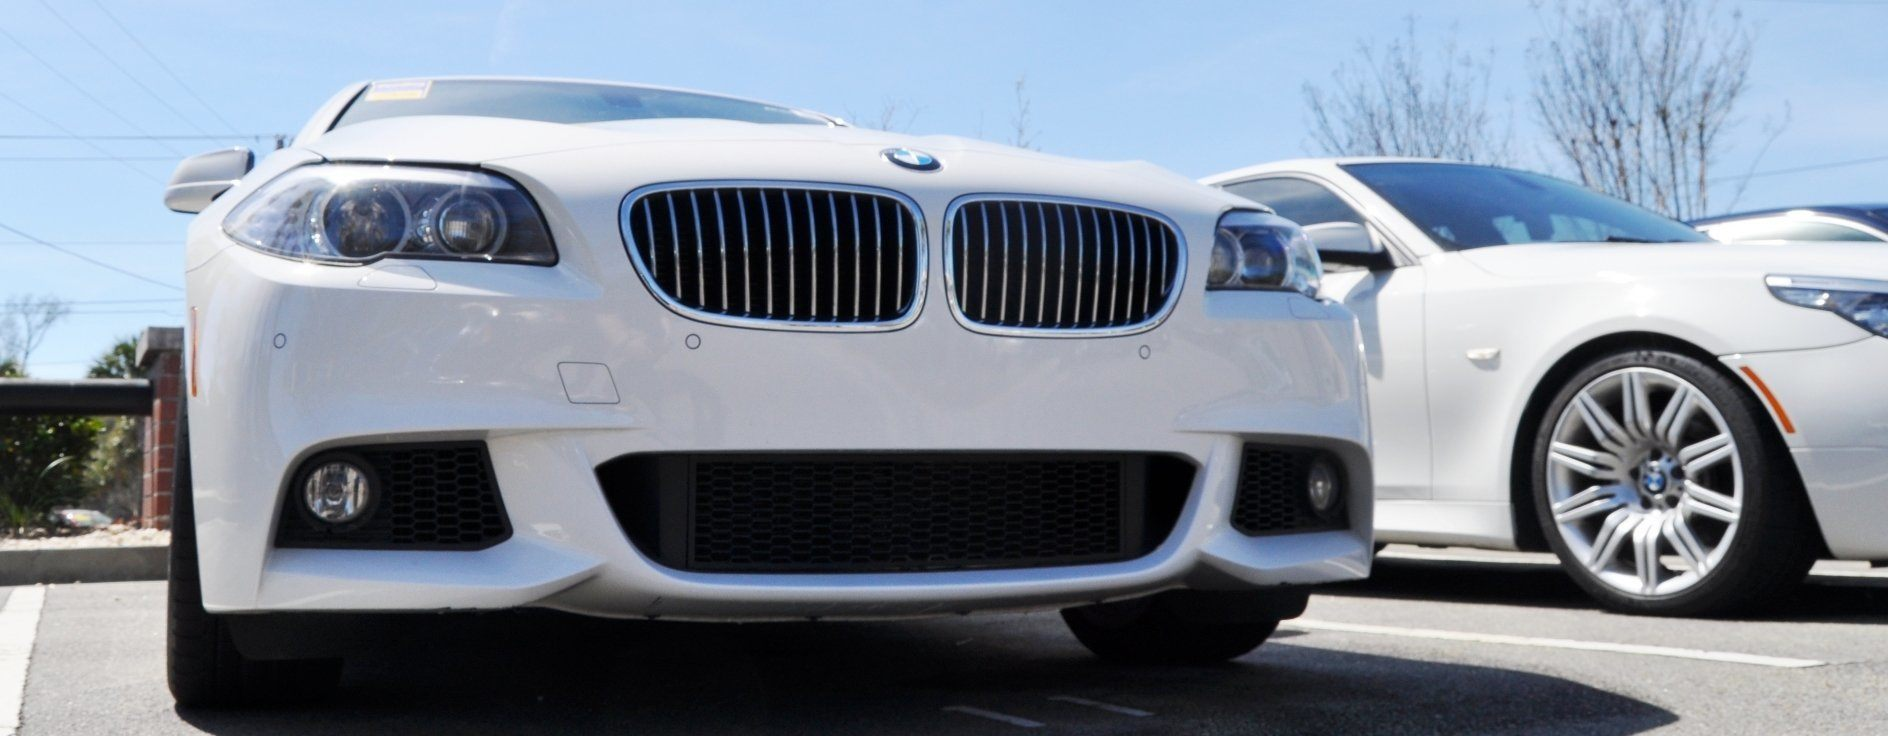 HD Video Road Test -- 2013 BMW 535i M Sport RWD -- Refined but Still Balanced, FAST and Posh 9